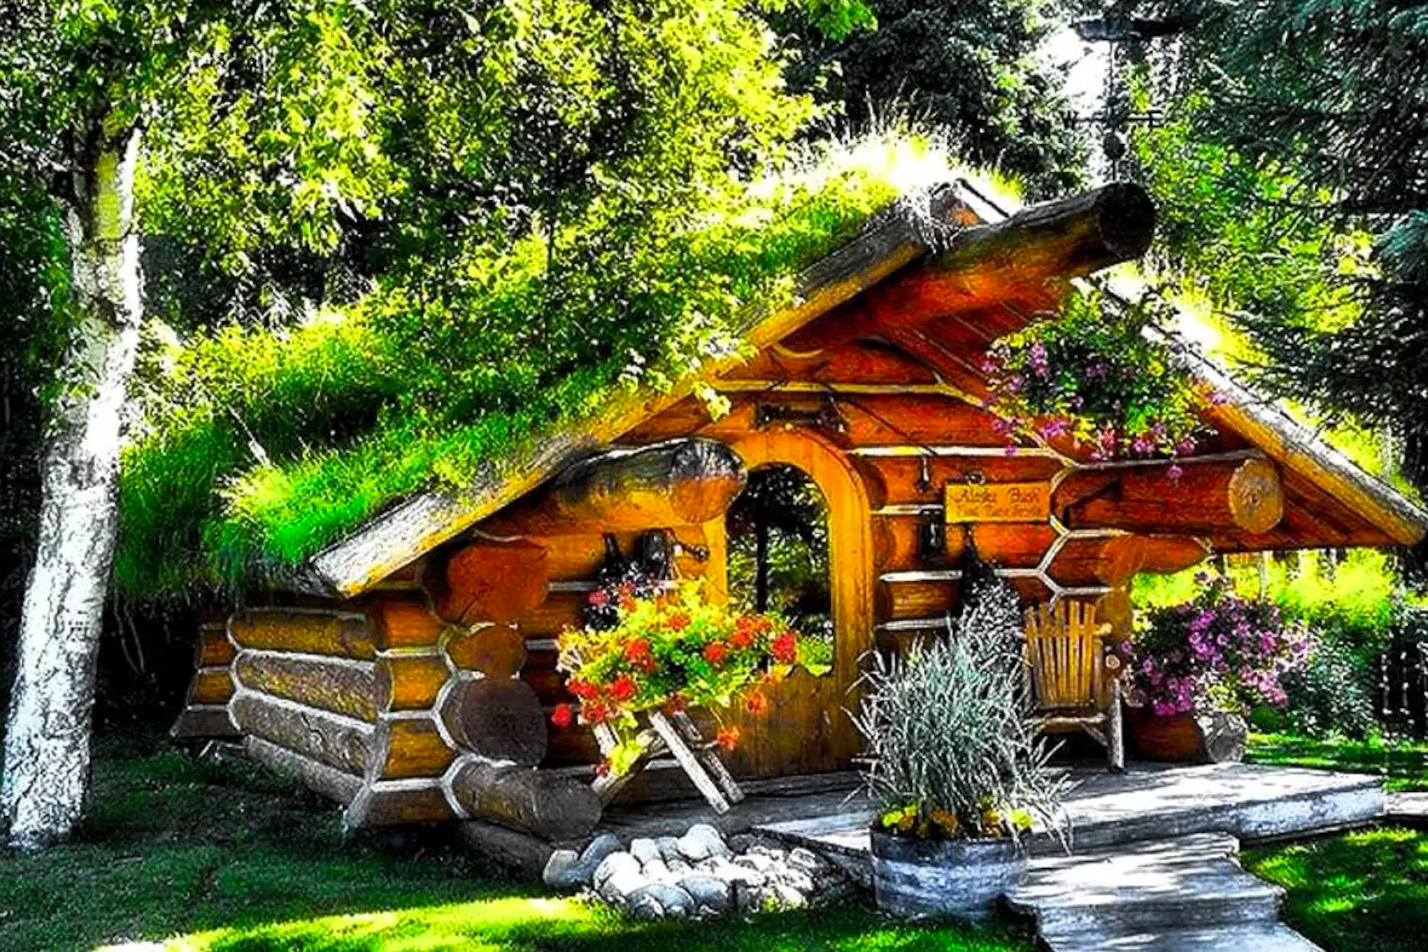 Hobbit Cabin in Talkeetna, AK